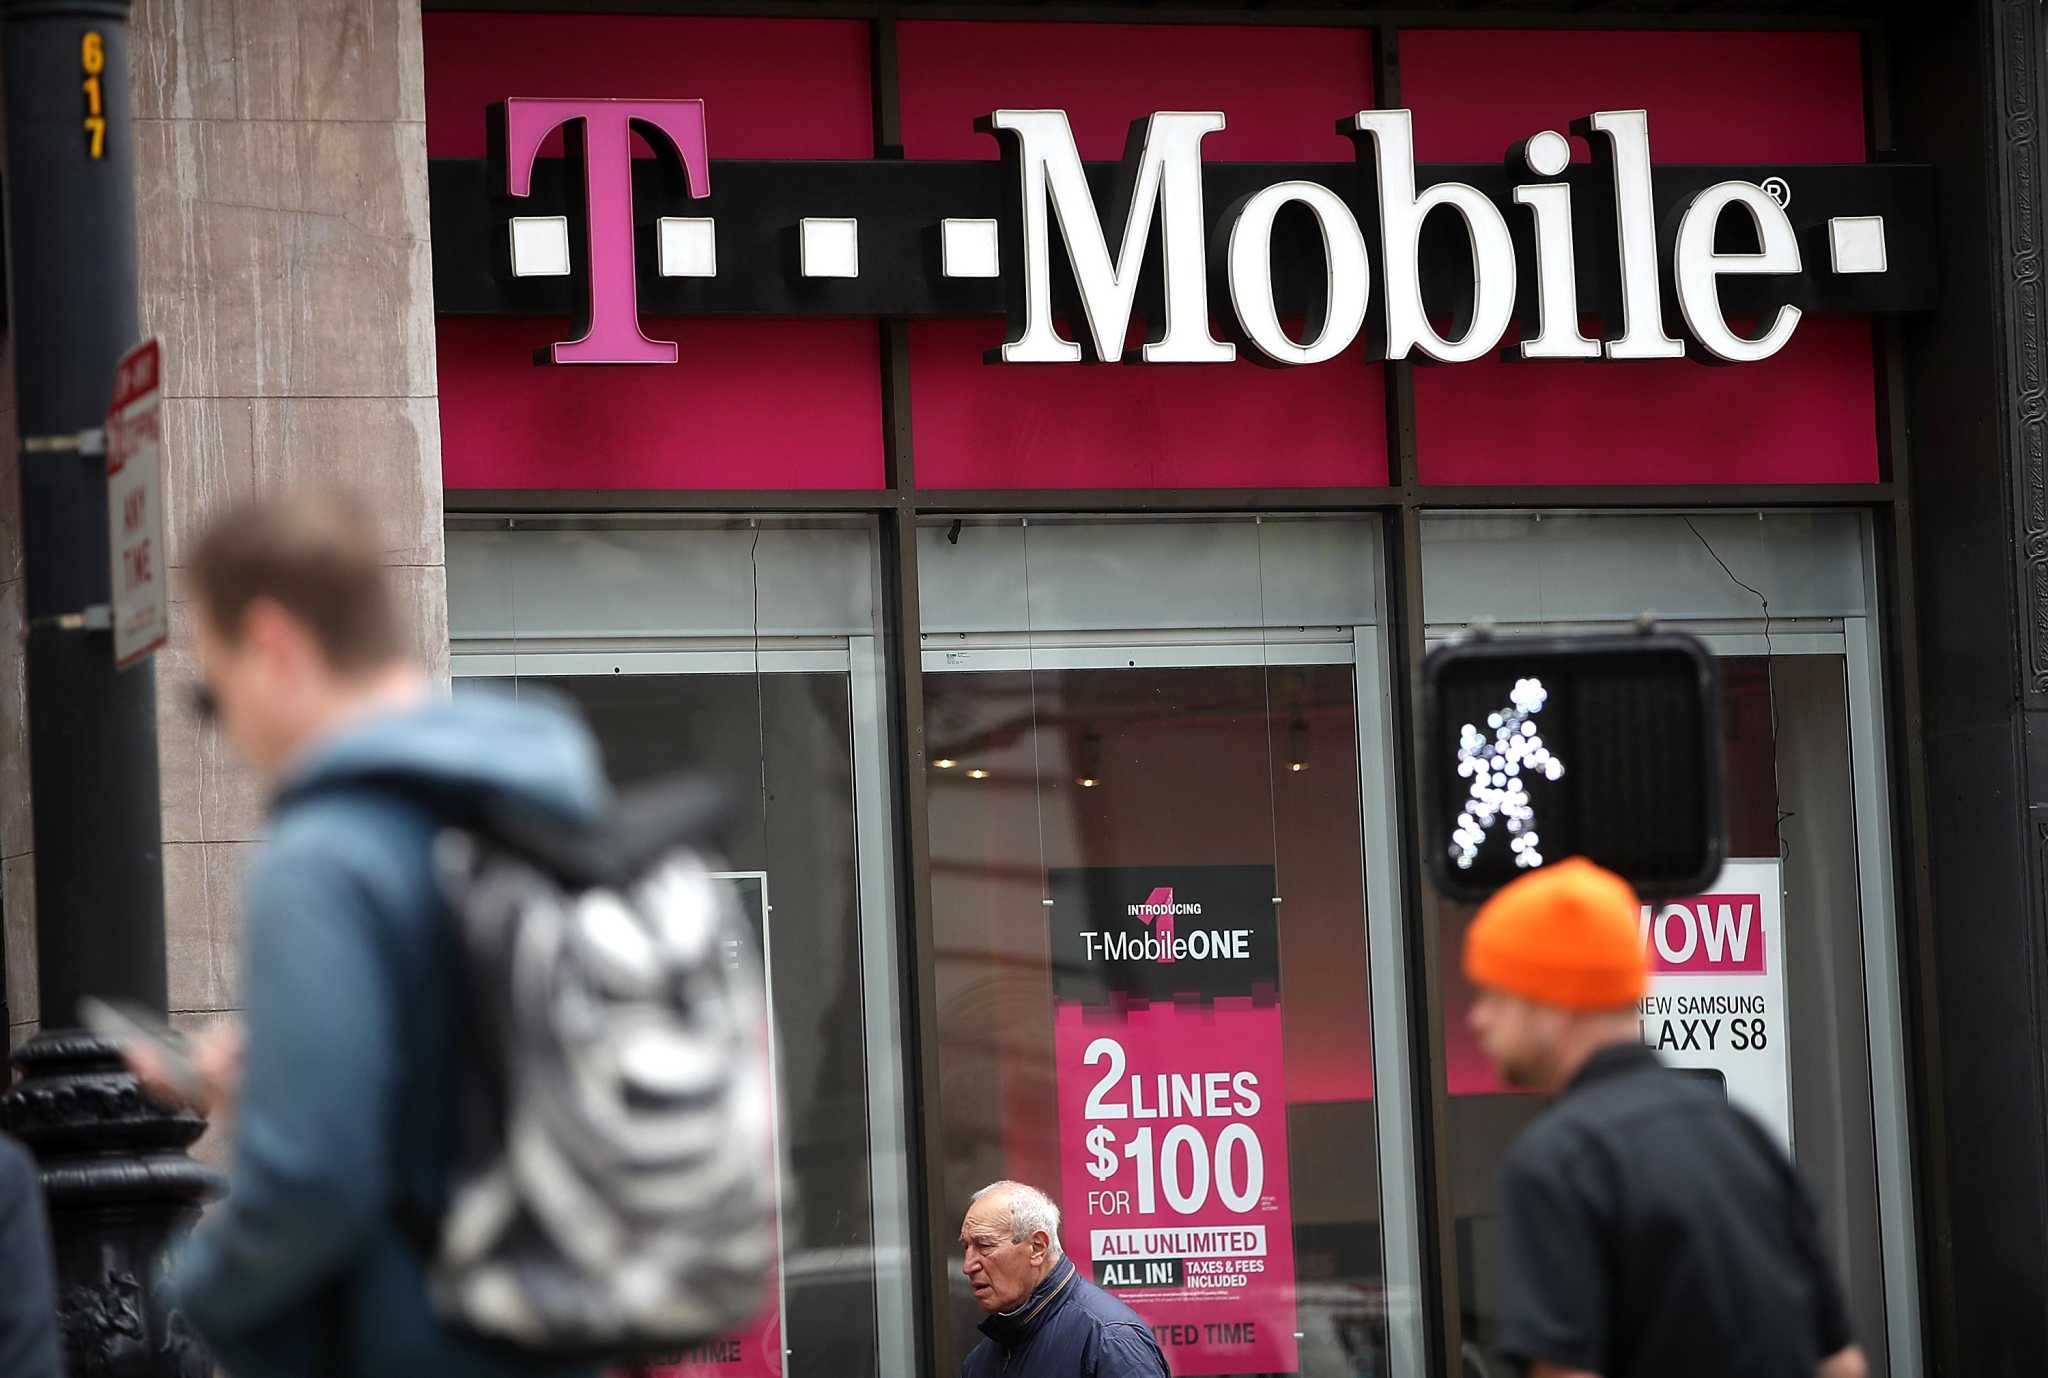 8 months after switch to T-Mobile from AT&T, no regrets